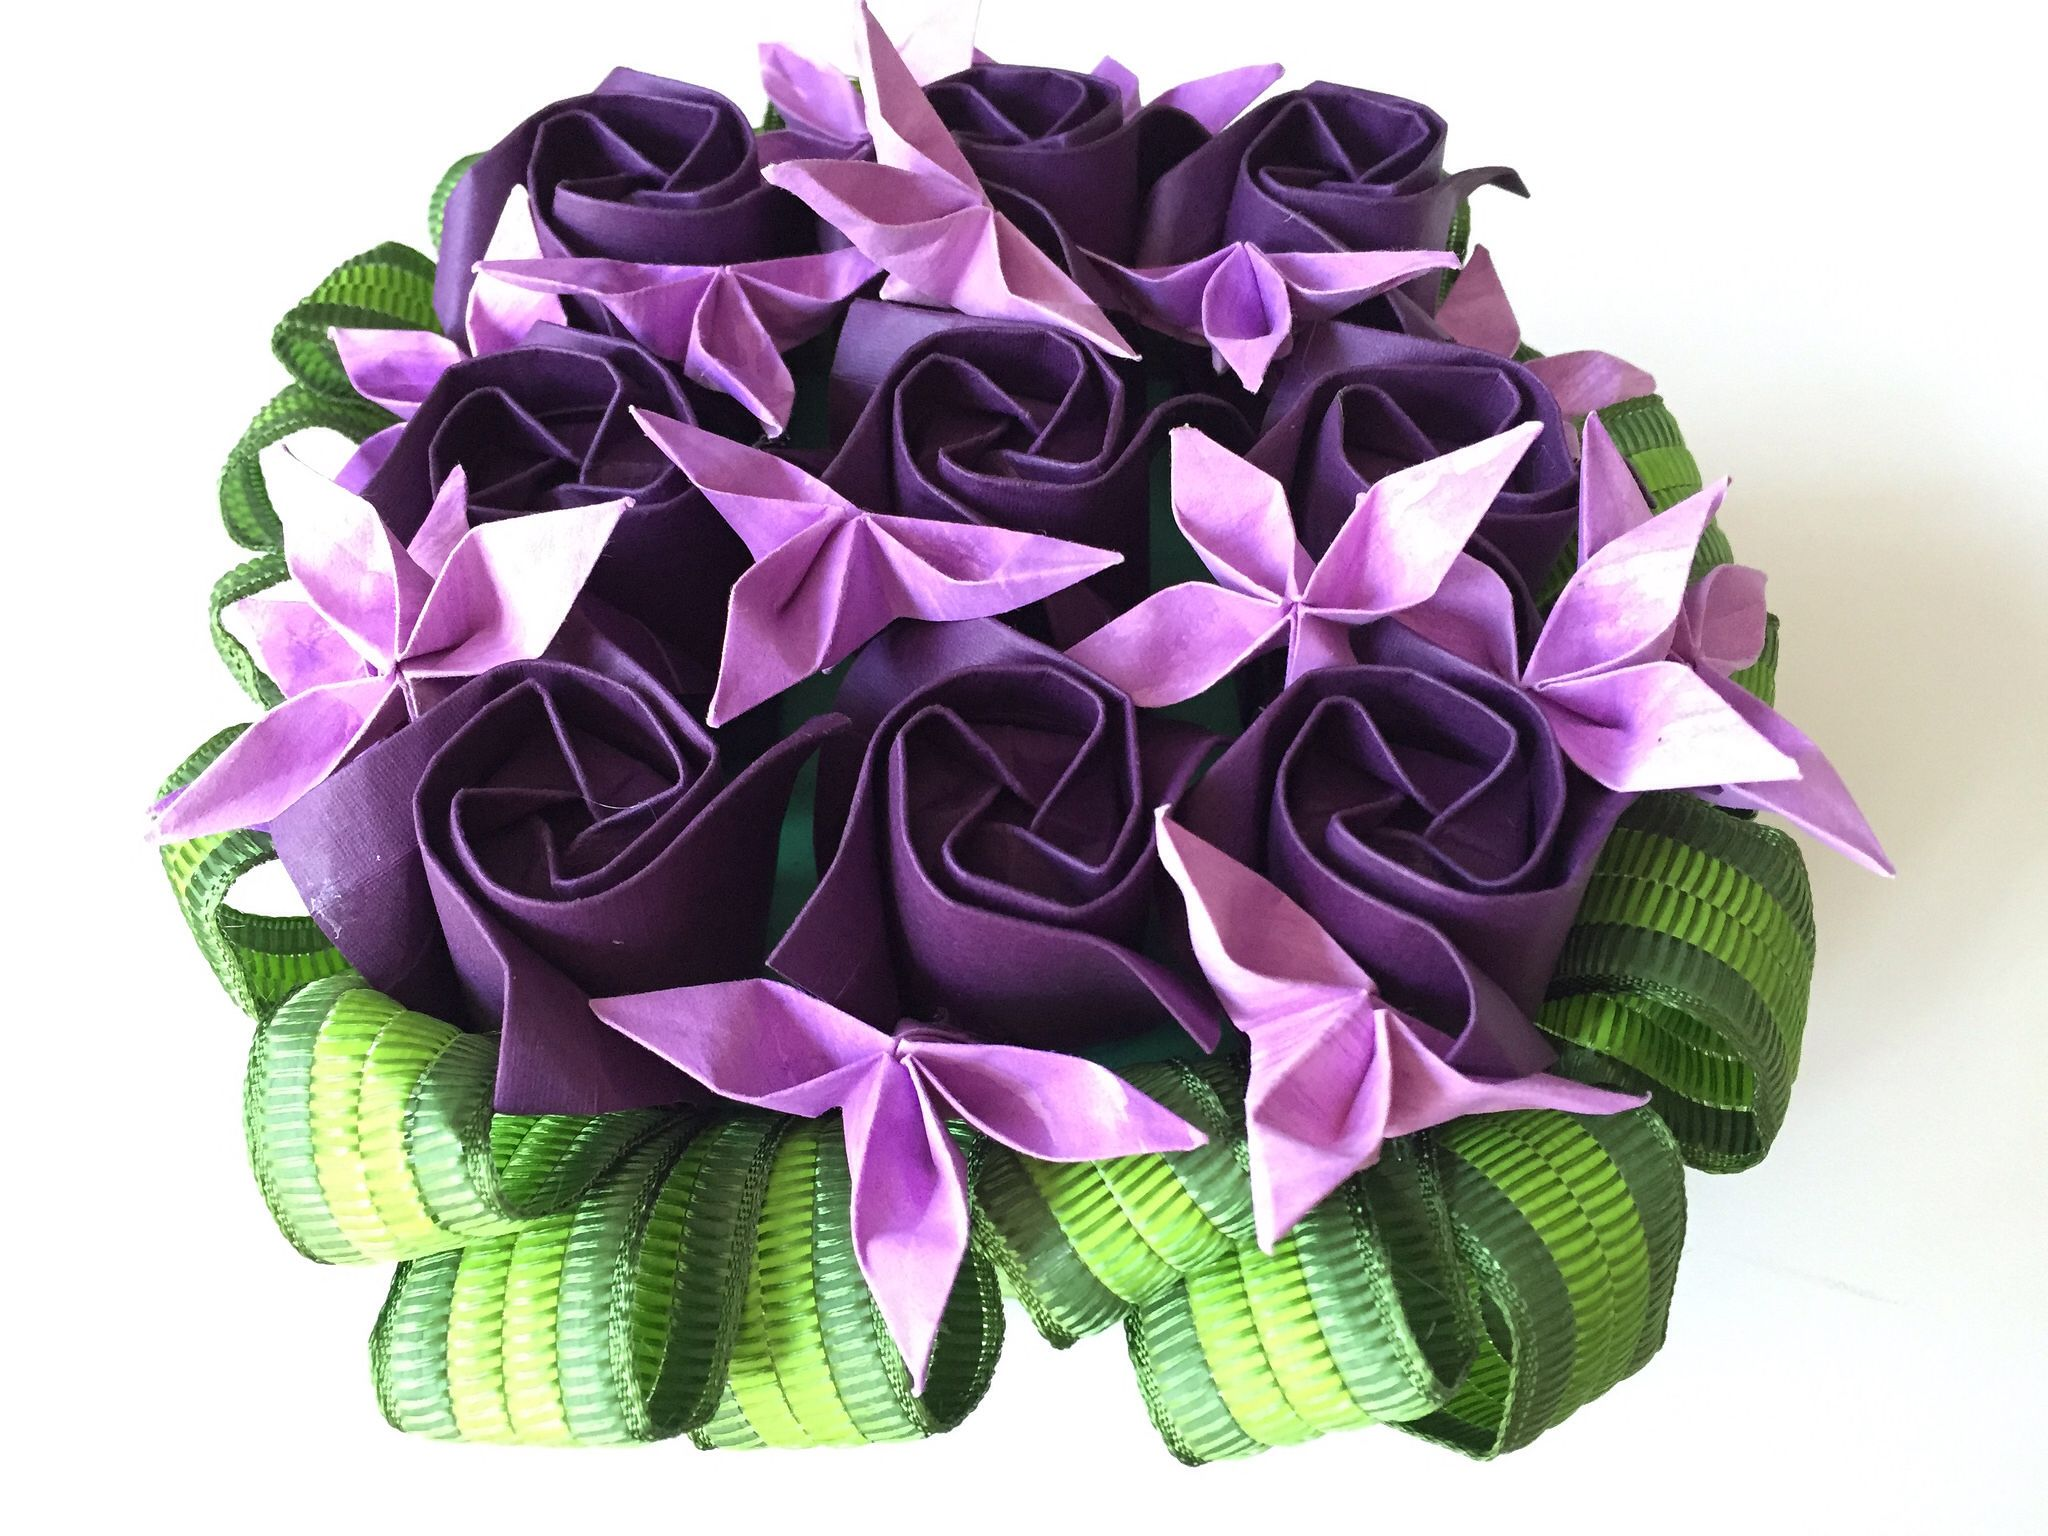 Origami Rose Box With Purple Roses Nlm Origami Passion Rose Boxes